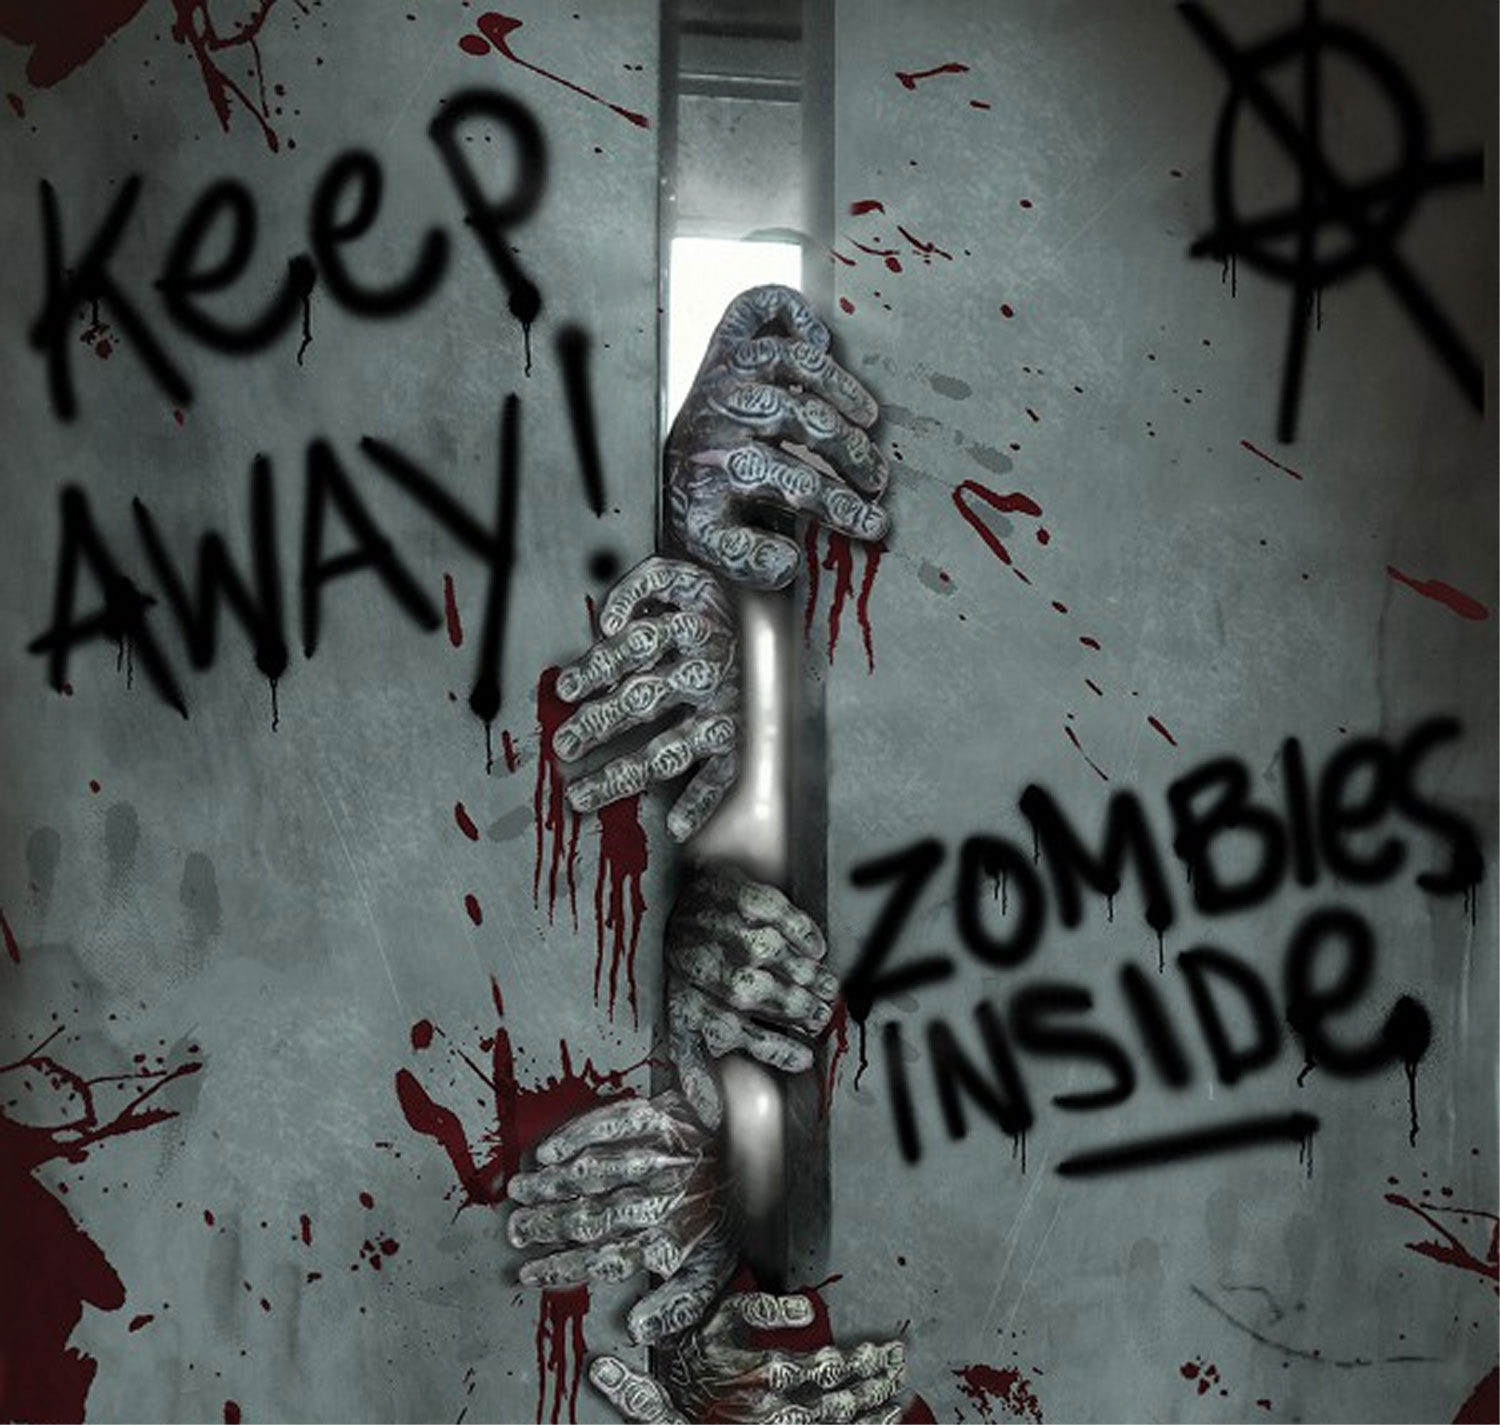 keep-away-turn-back-zombies-inside-door-cover-horror-decoration